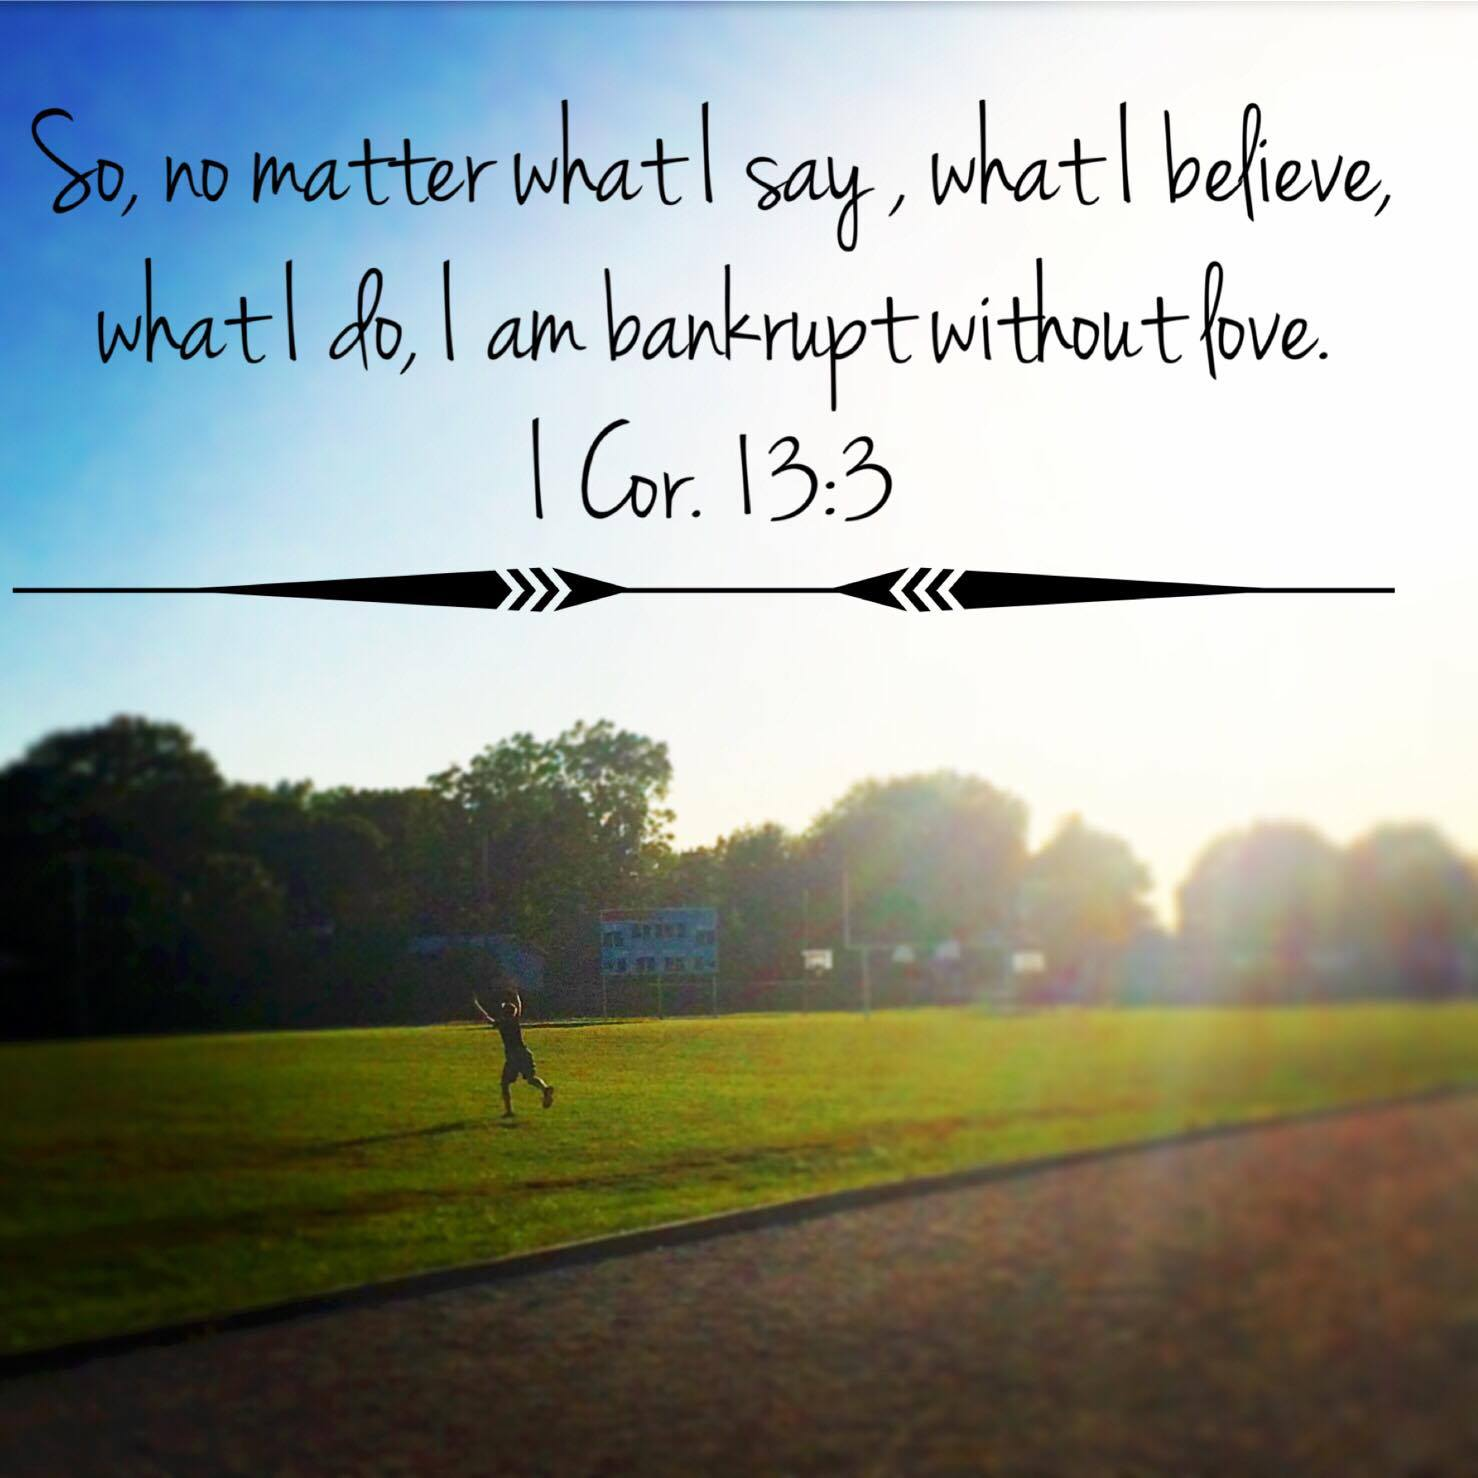 For The Love: Why I Support Jen Hatmaker www.herviewfromhome.com